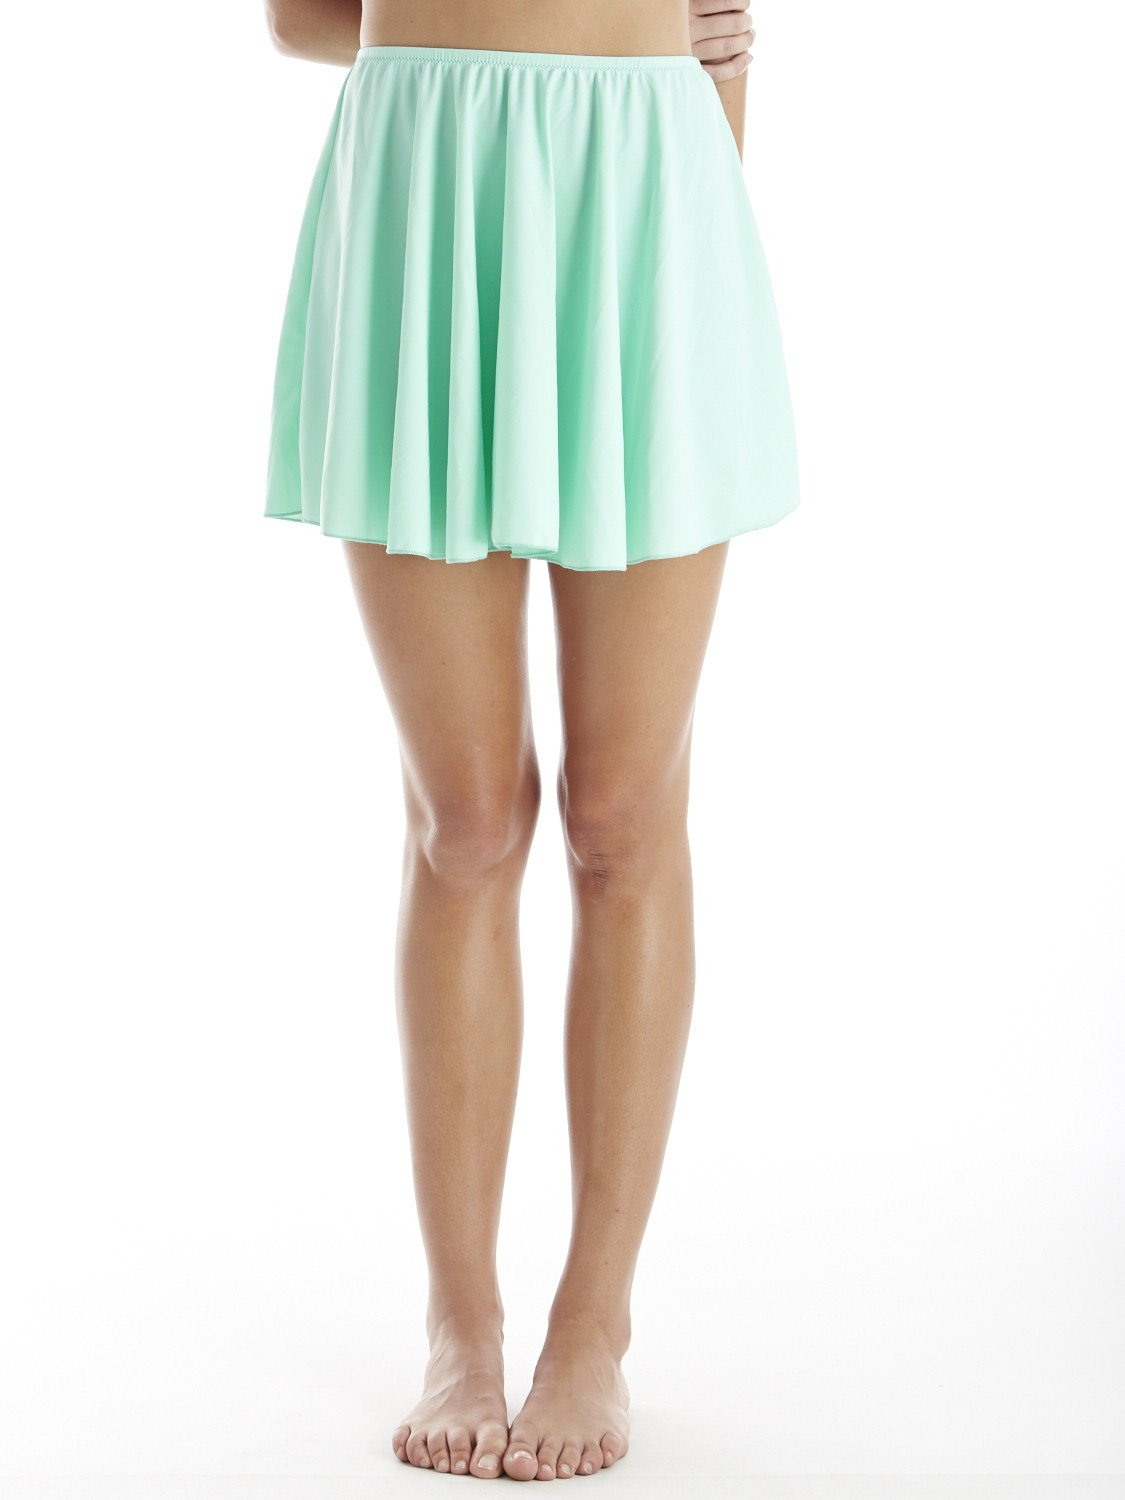 skirt in mint